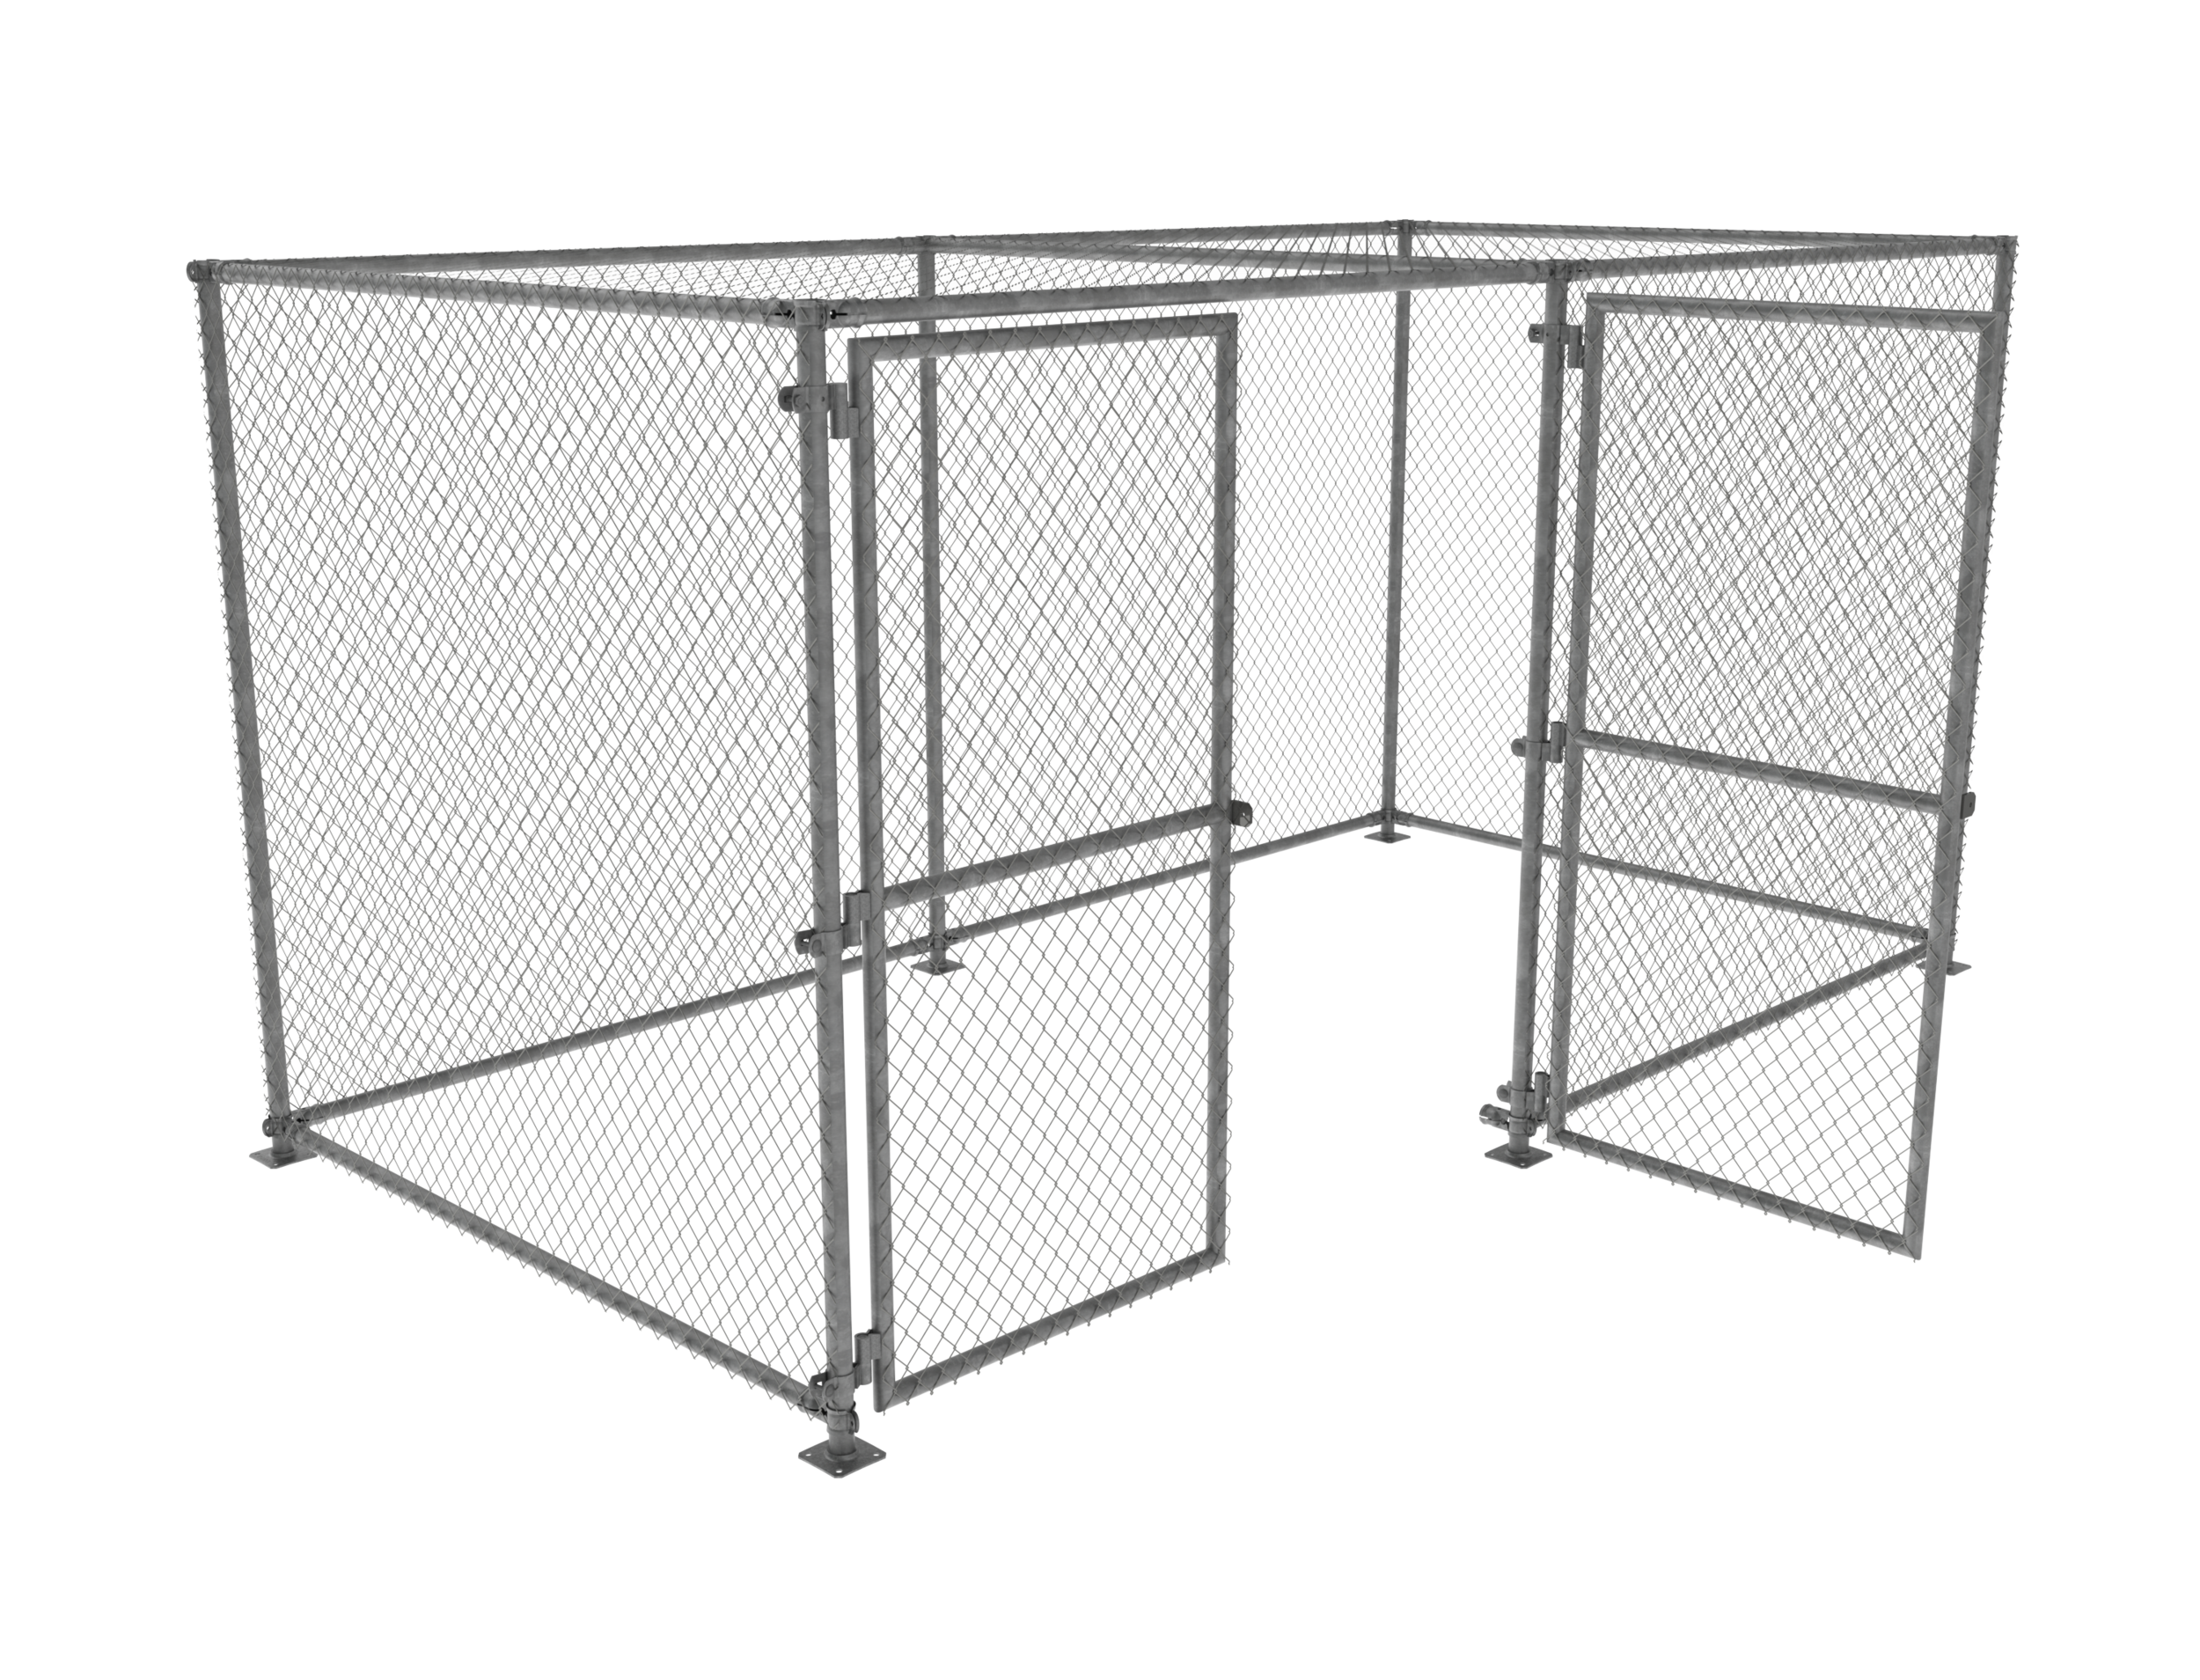 Chainlink Storage Cage Render 2.png